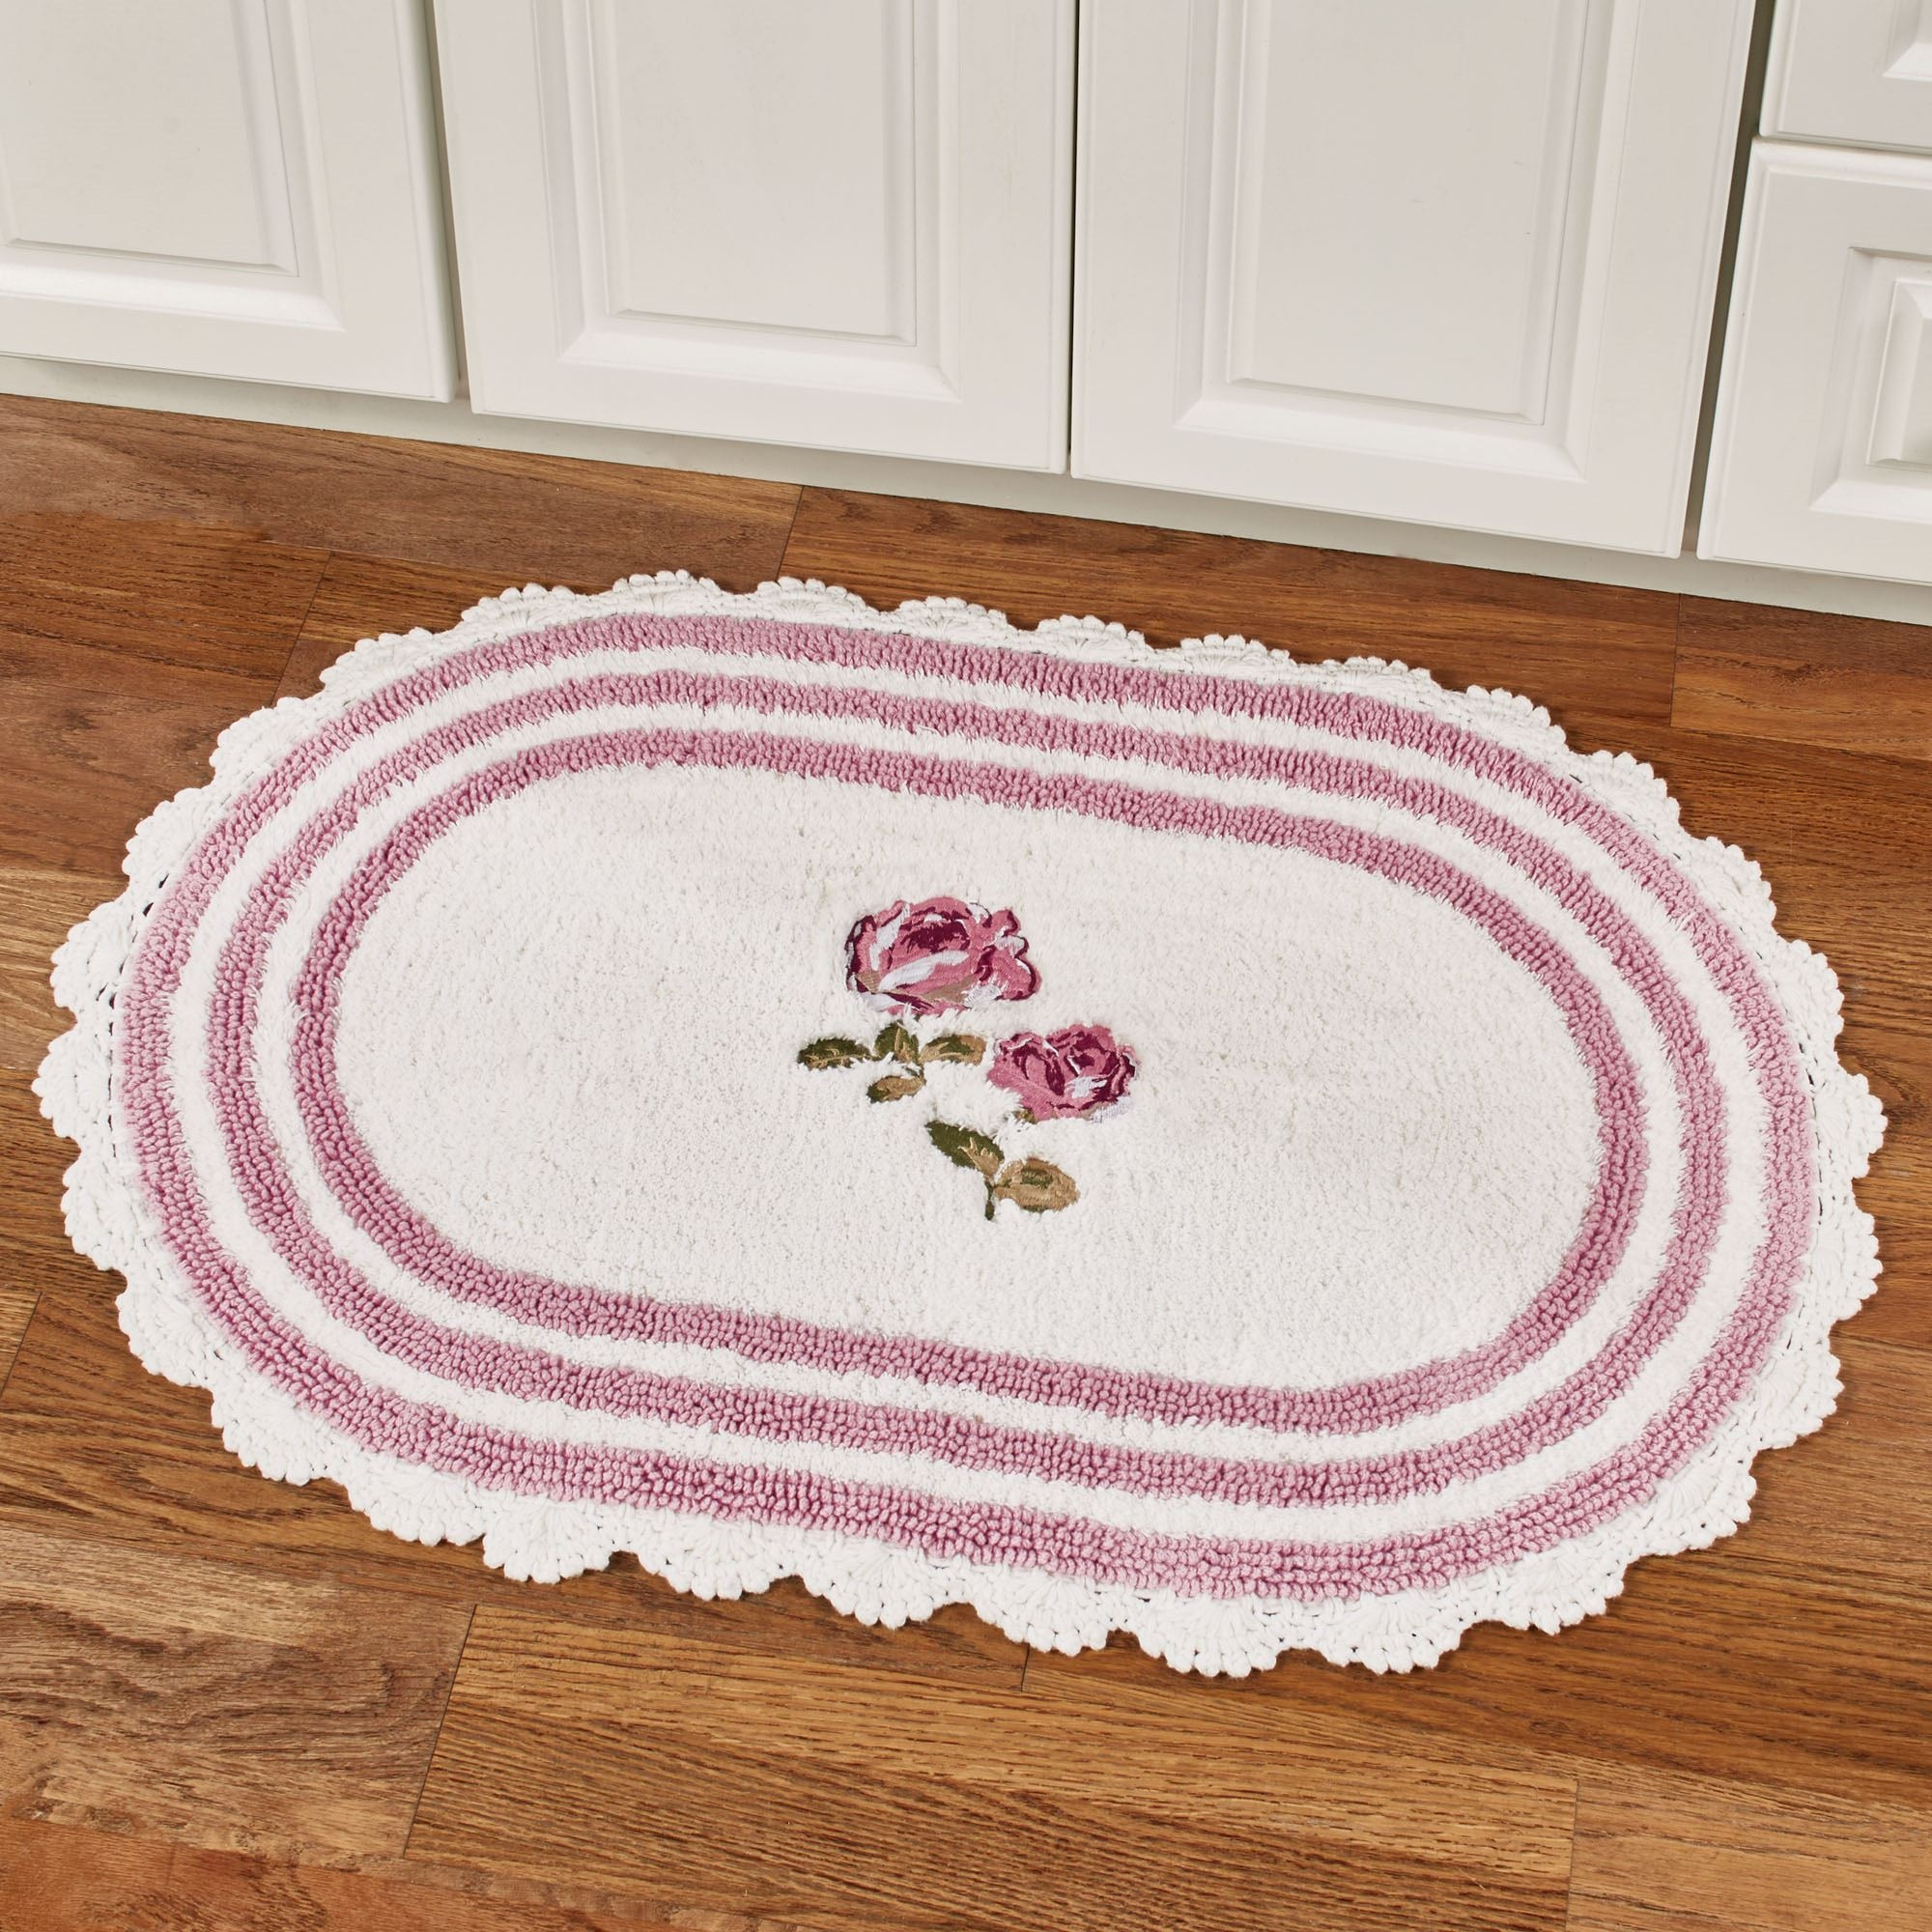 Pink Floral Bath Rugsbath rugs contour rugs and toilet lid covers touch of class